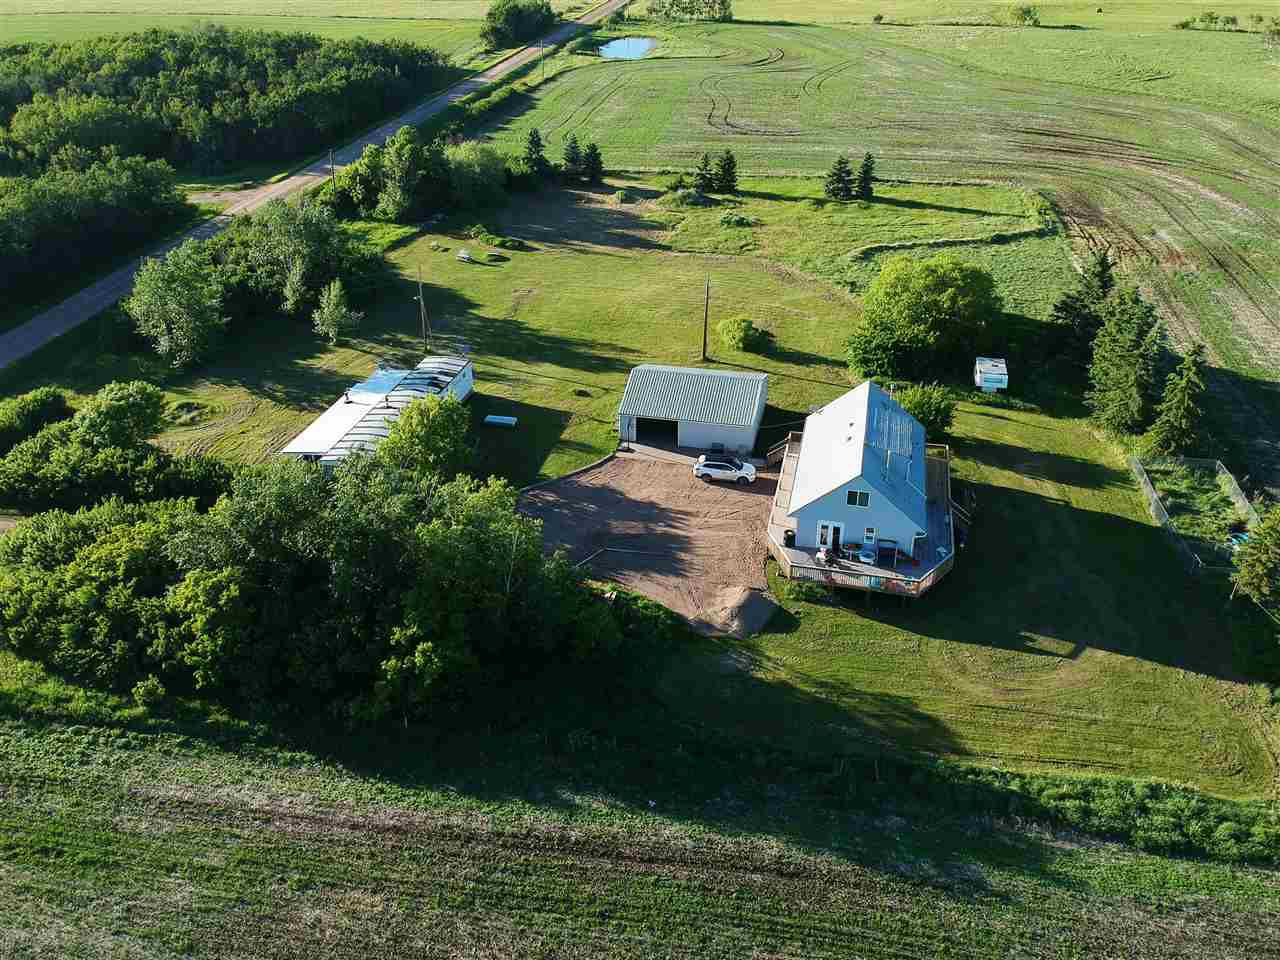 Main Photo: 545025 191 Road: Rural Lamont County House for sale : MLS®# E4151416